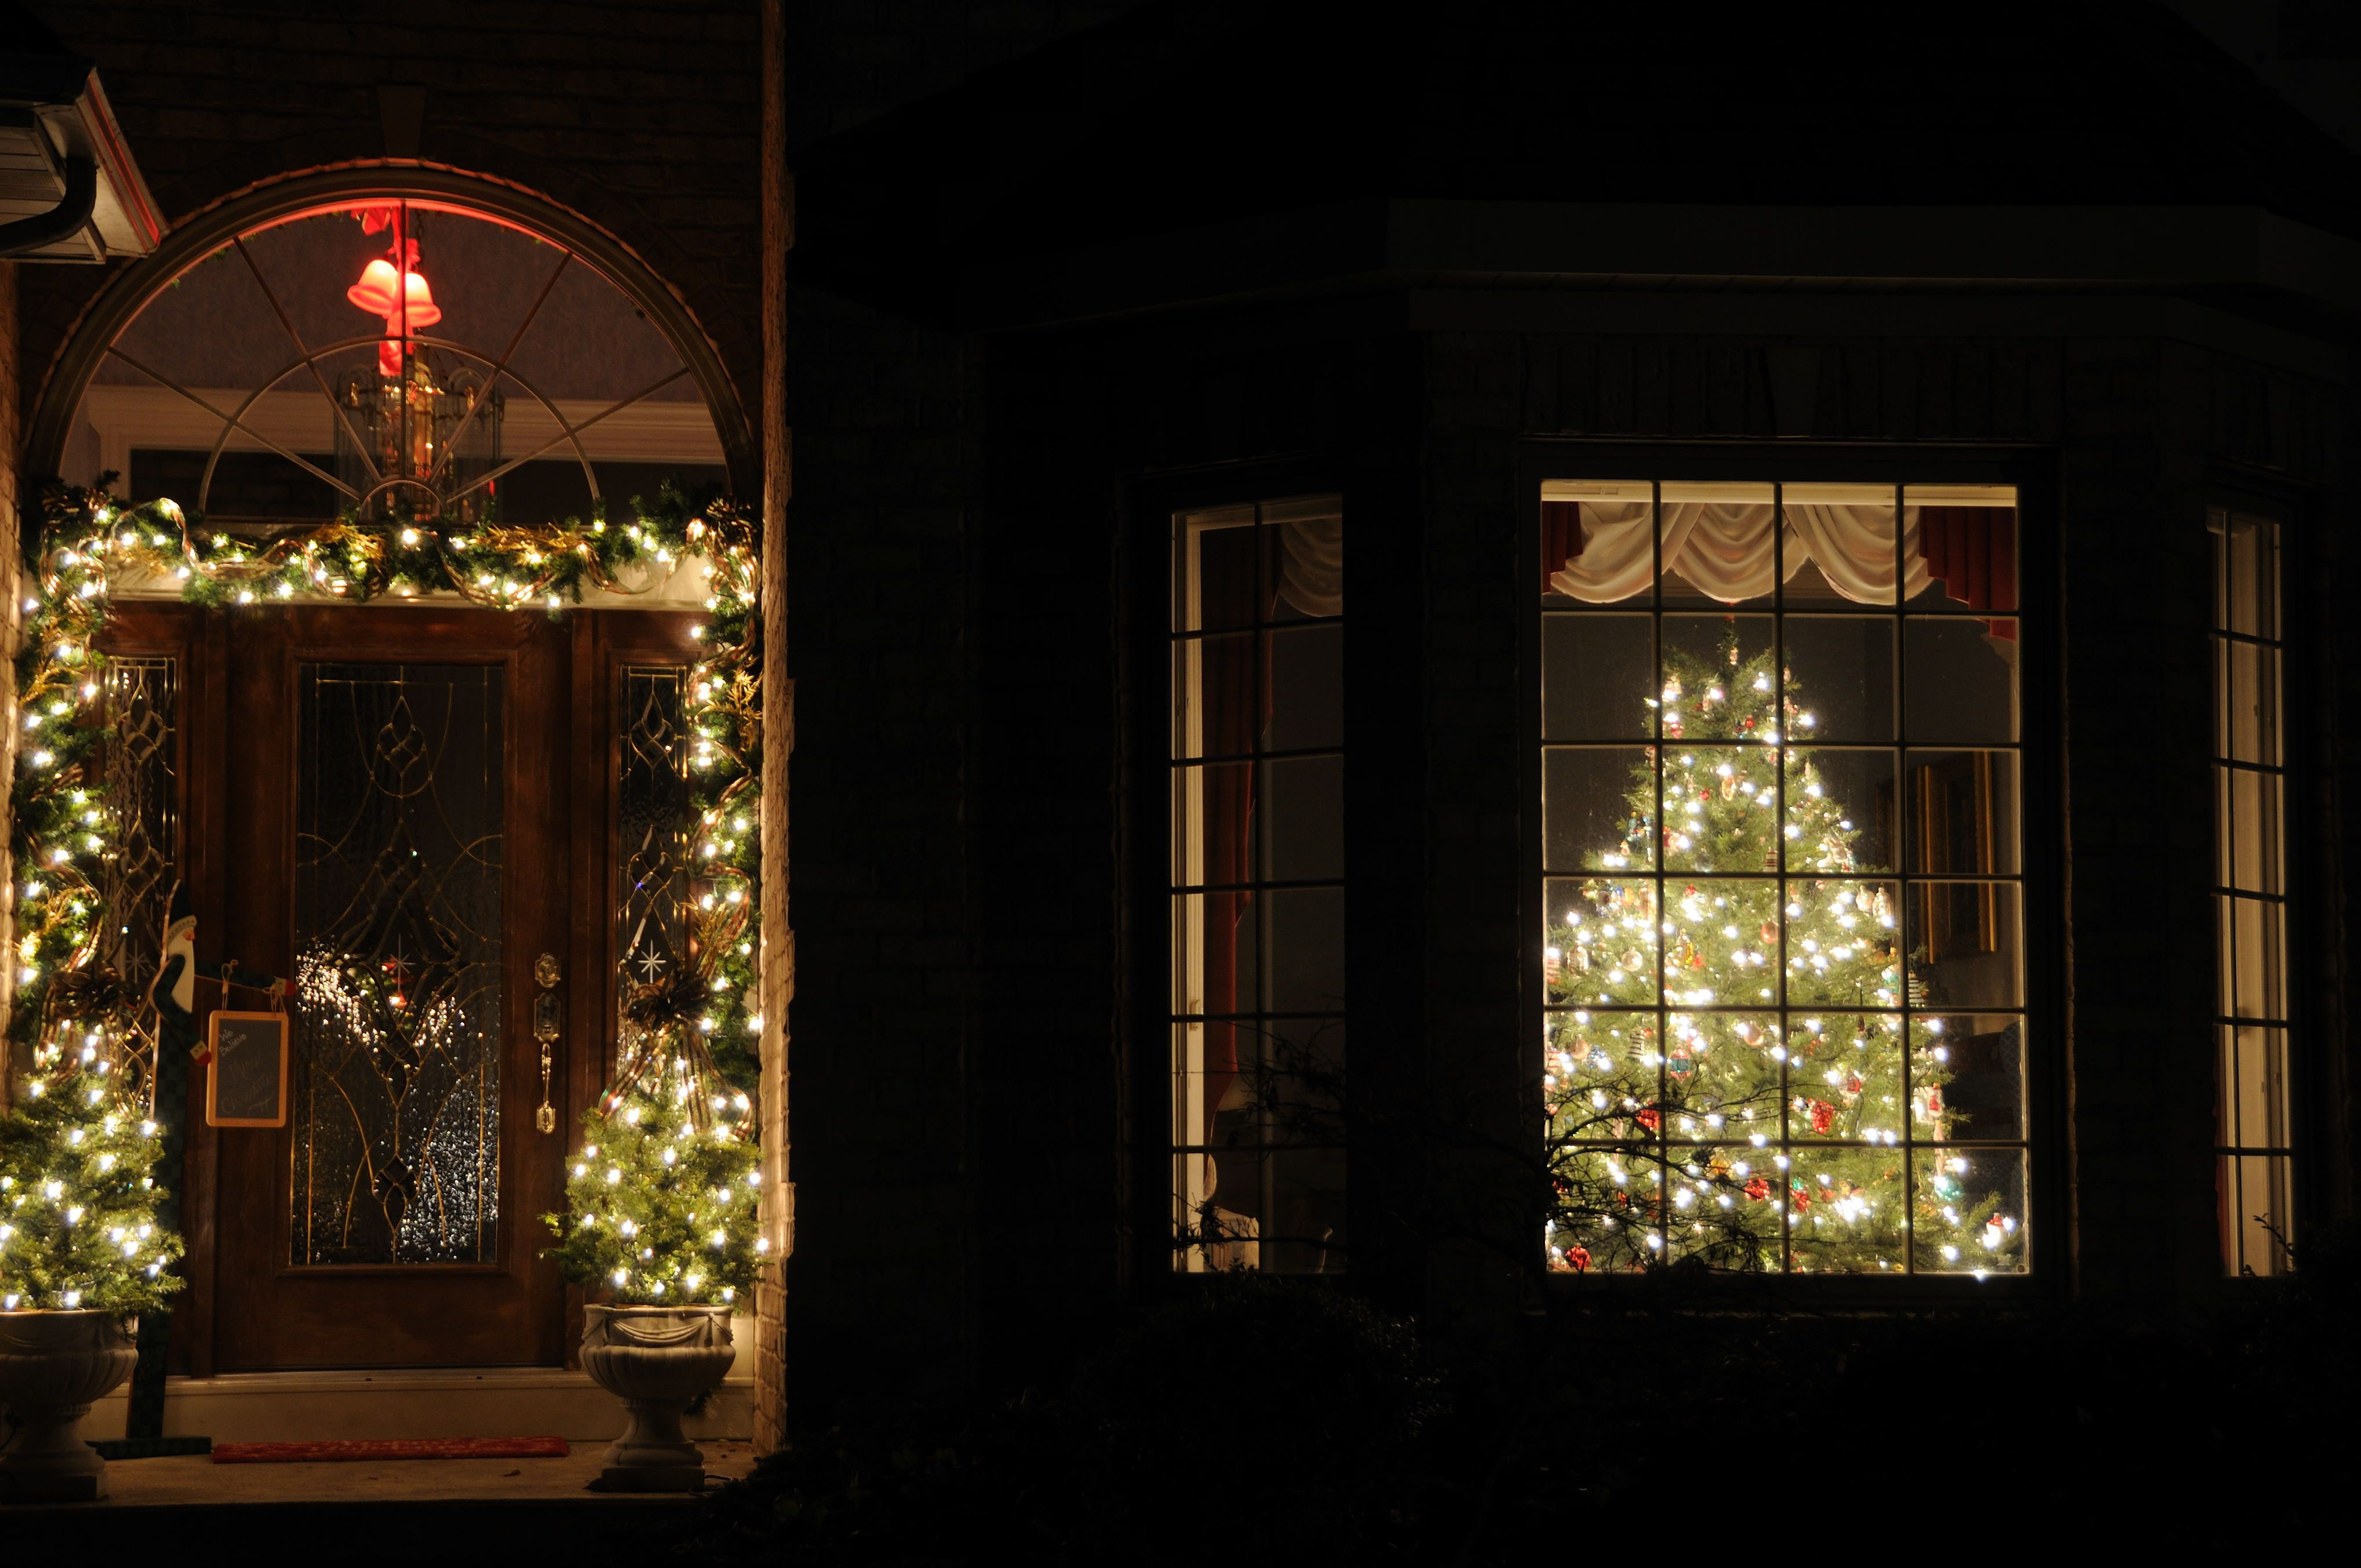 Christmas Window Posters Google Search Christmas Window Lights Xmas Window Decorations Window Decor